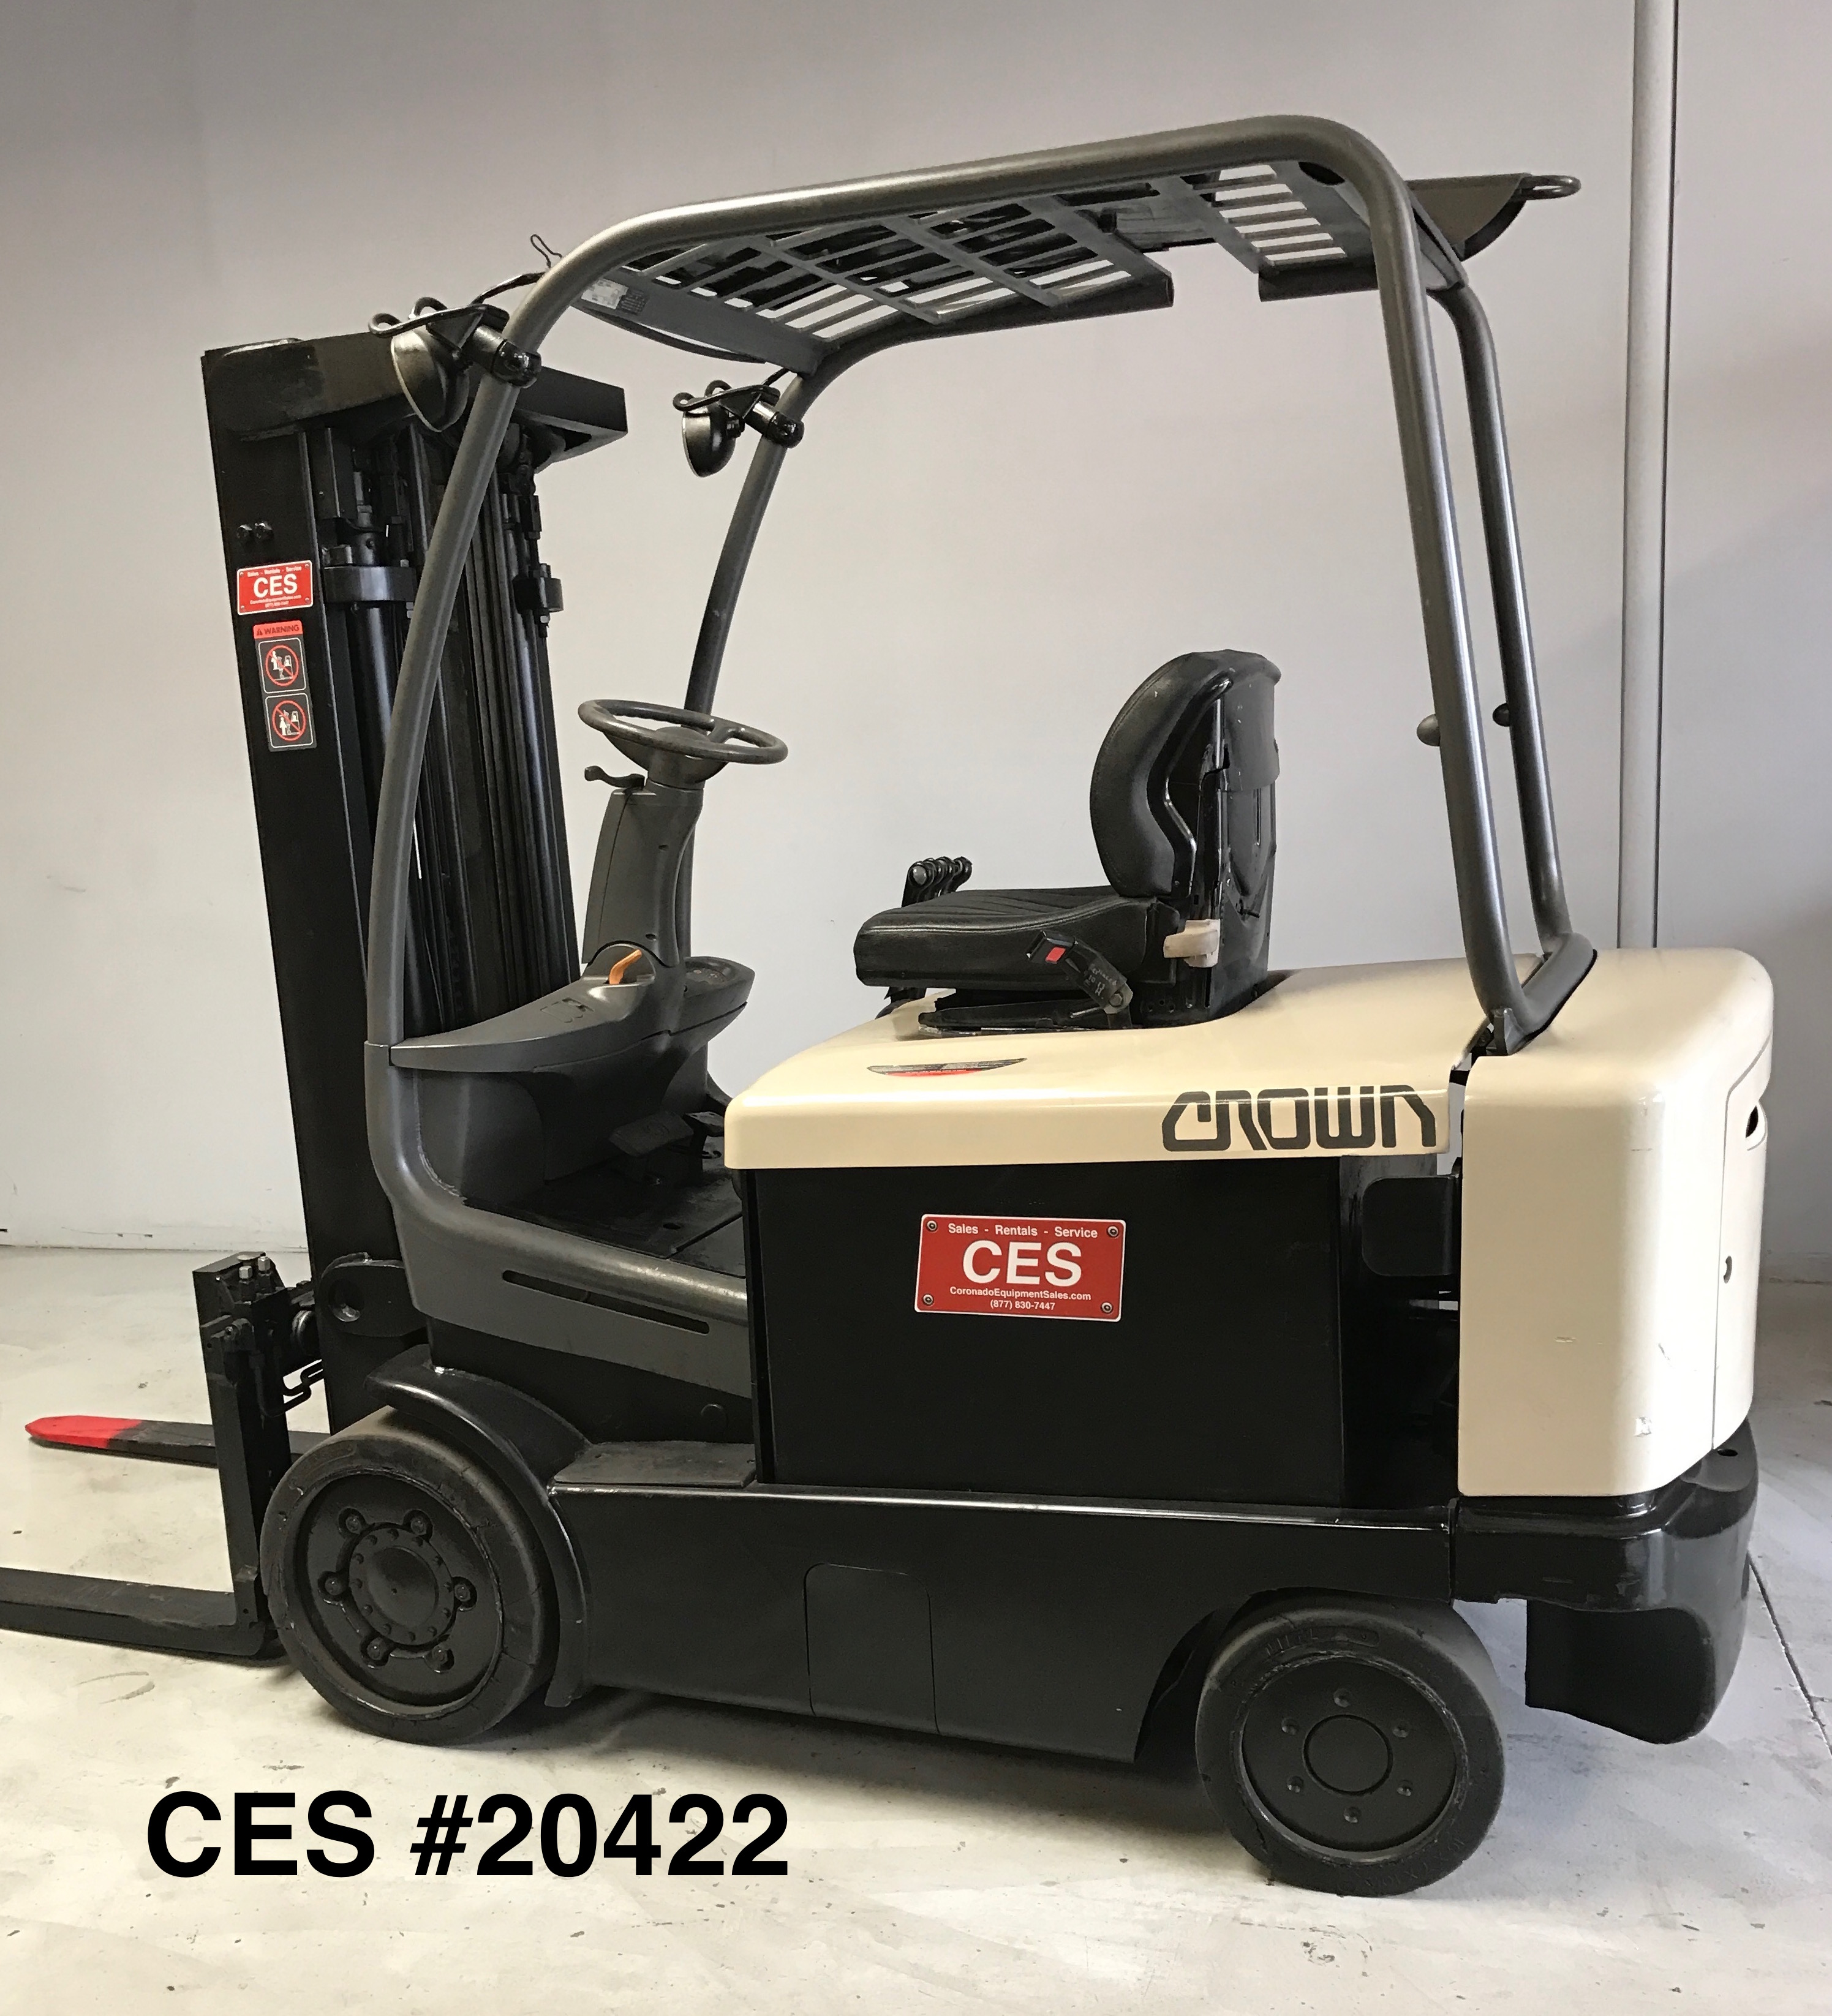 mitsubishi dallas sales warehouse forklifts irving worth toyota fort arlington forklift equipment ace capacity